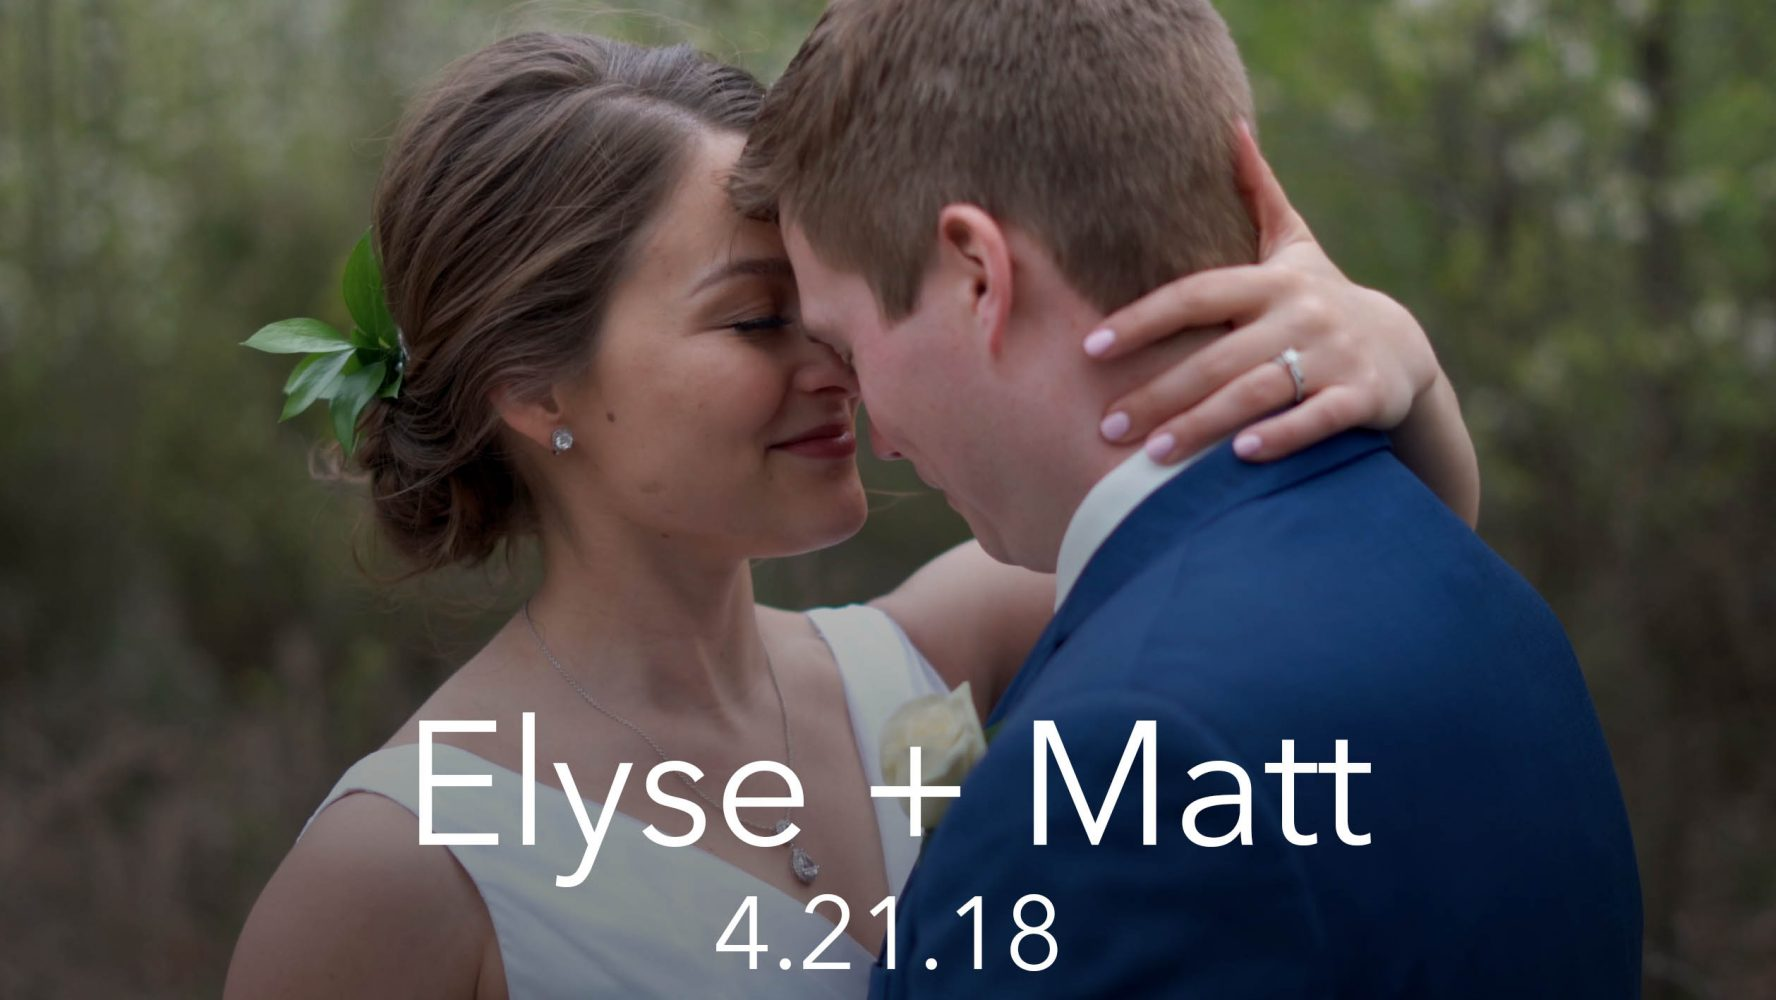 Elyse + Matt | St. Louis, Missouri | Old Monroe Knights of Columbus Hall